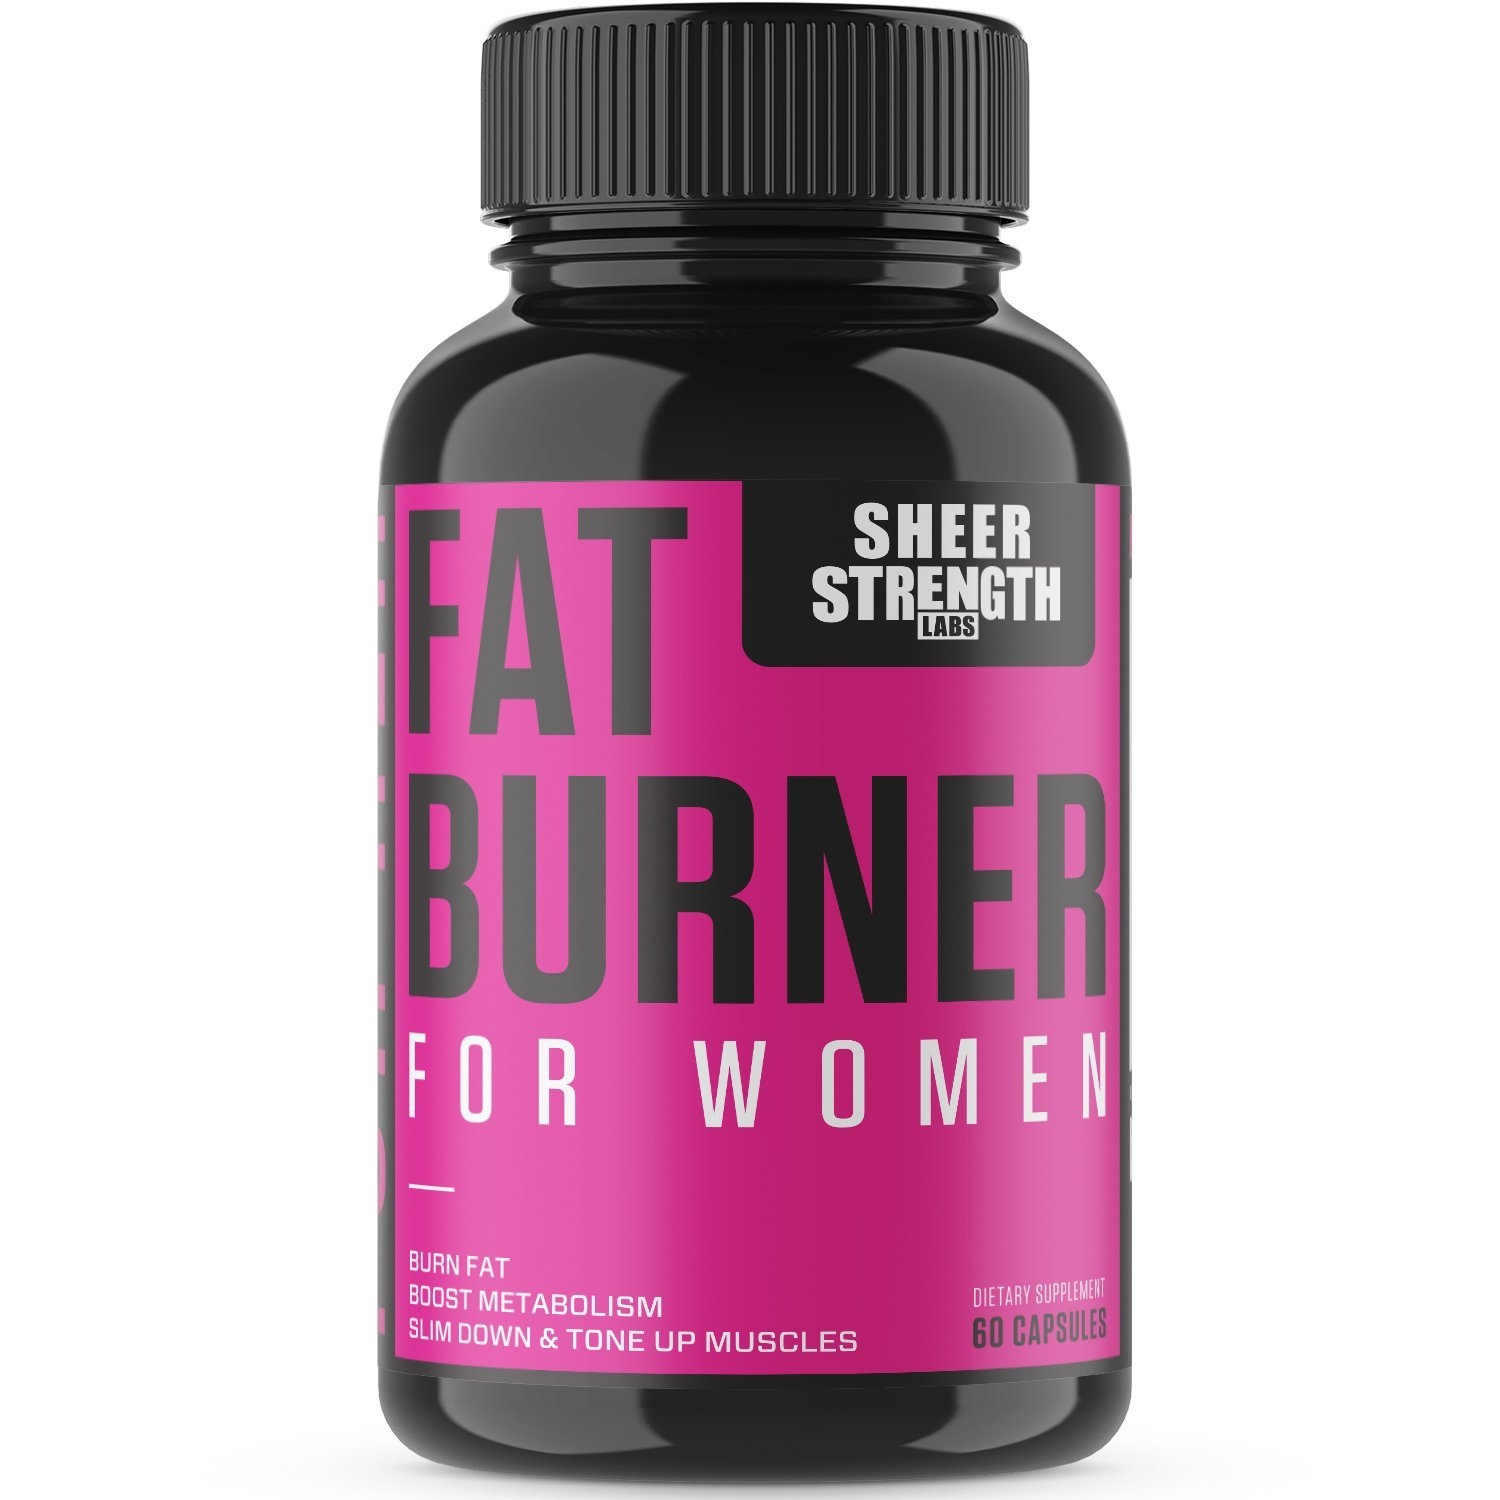 Sheer Fat Burner for Women